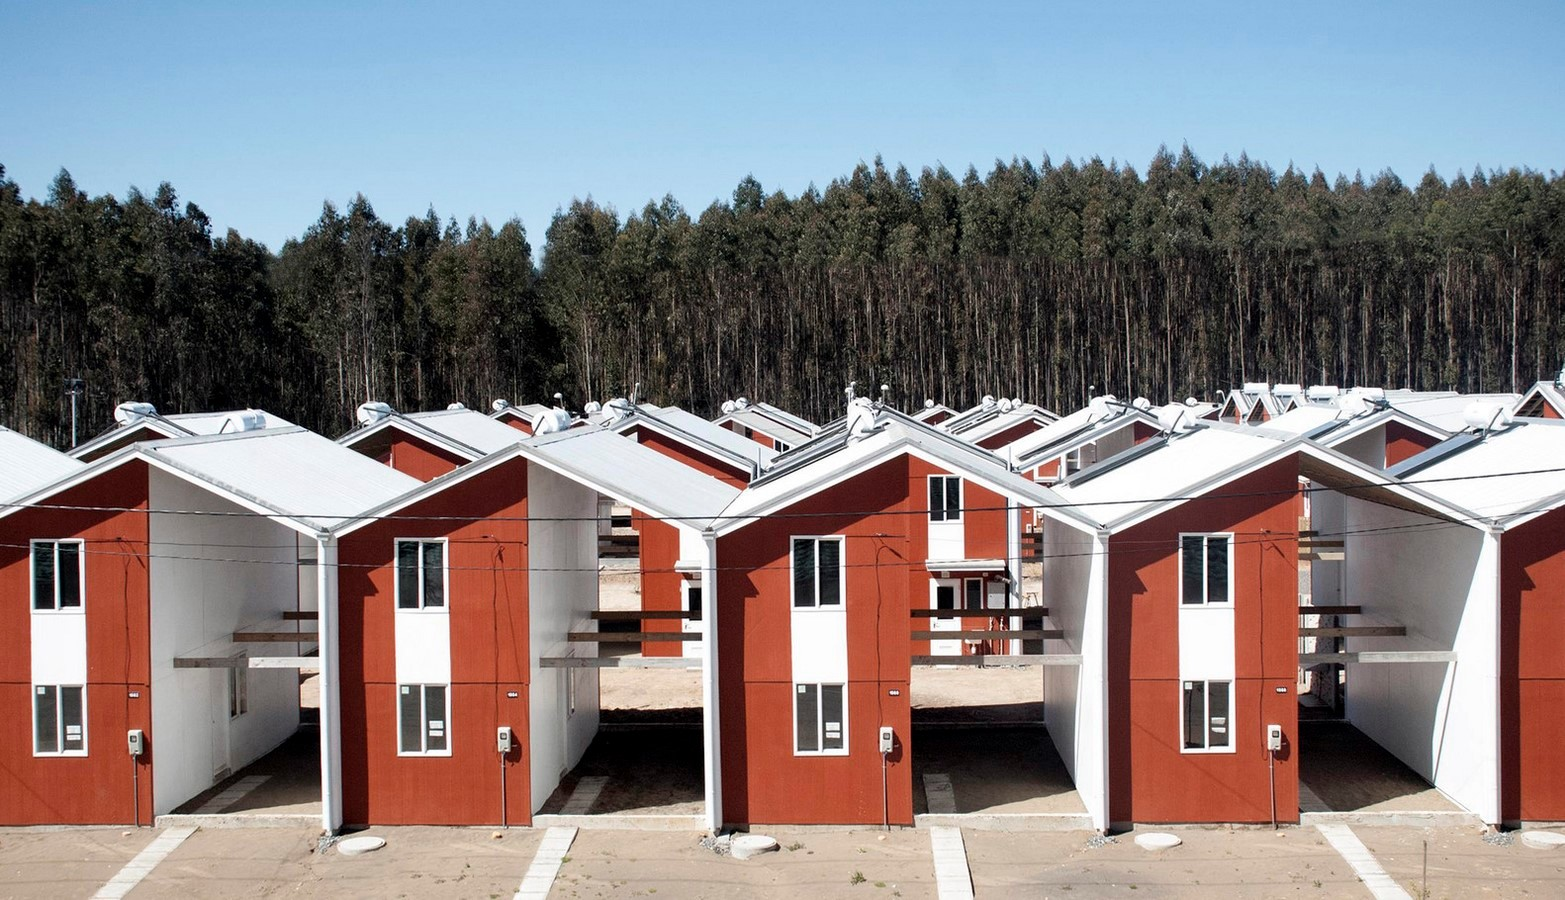 Tedtalk for Architects: Alejandro Aravena: My architectural philosophy? Bring the community into the process - Sheet5